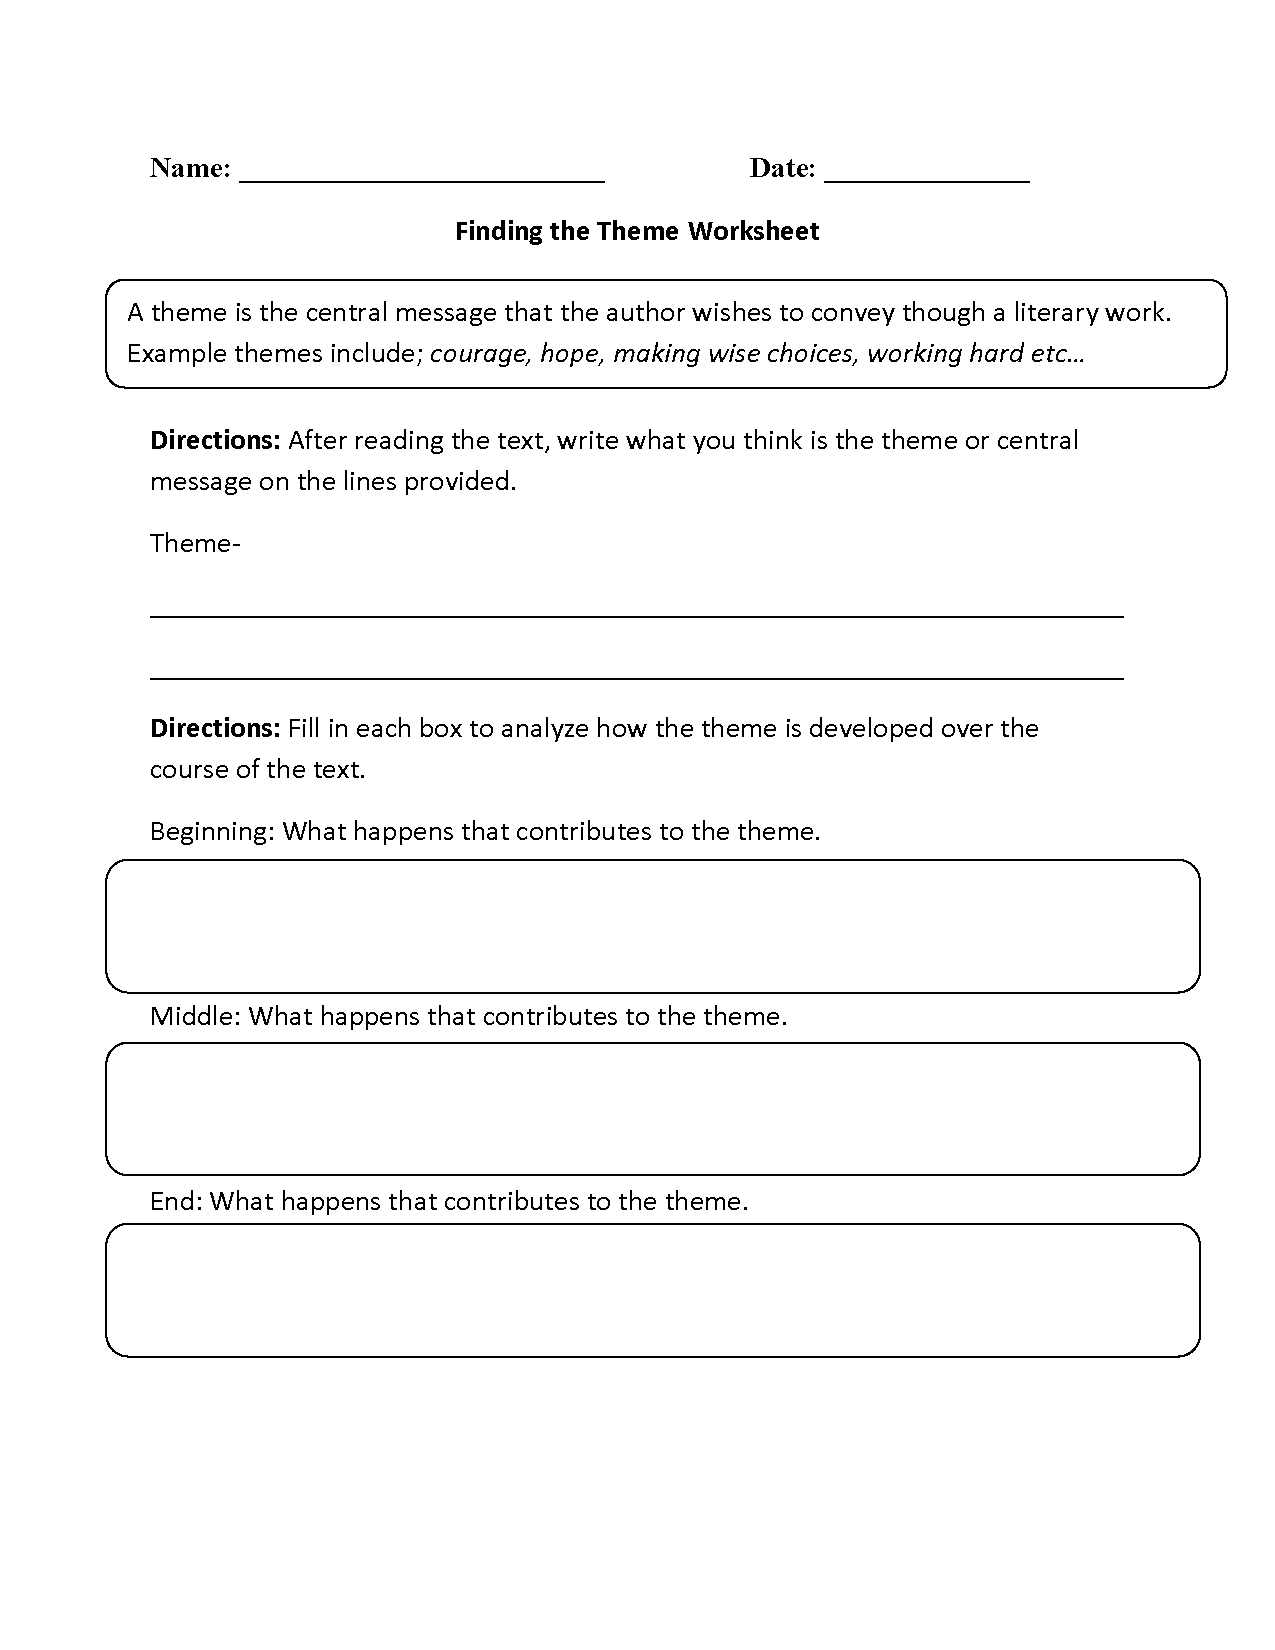 Finding the Theme Worksheet